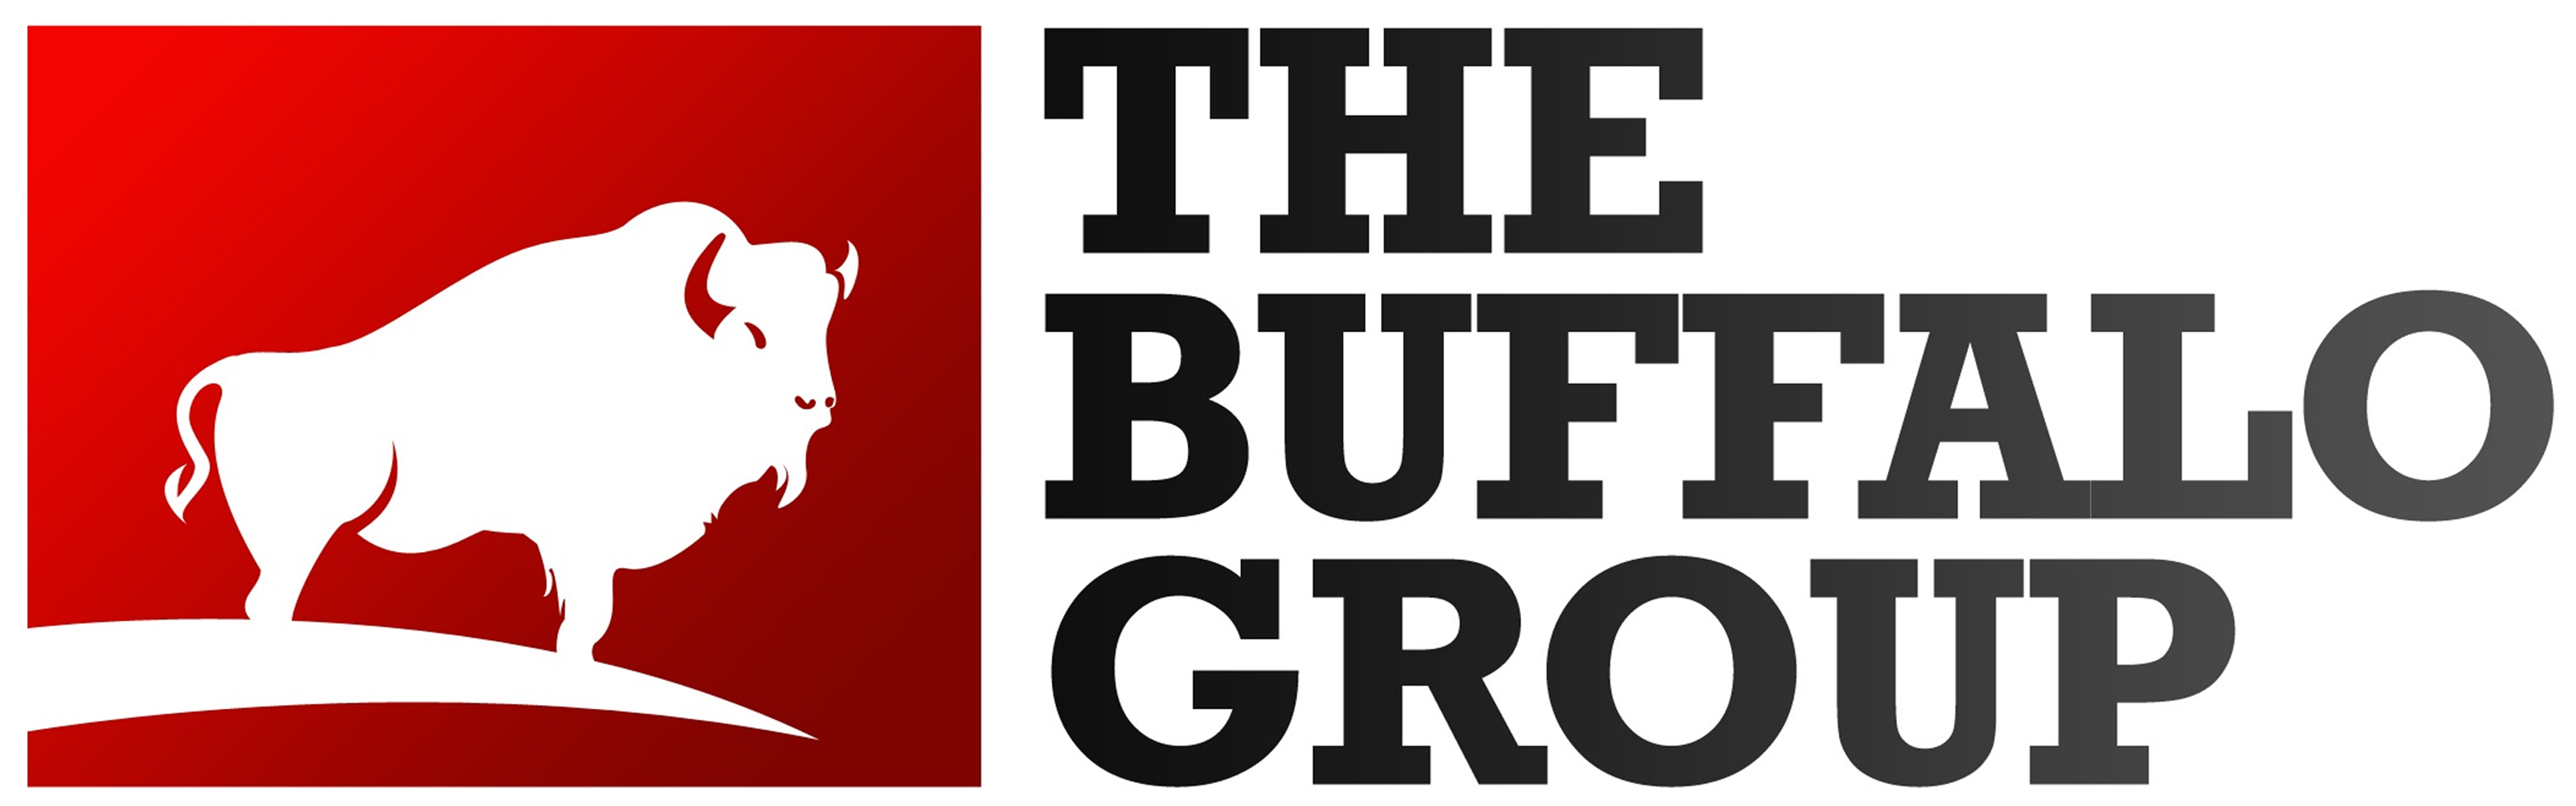 The Buffalo Group Company Logo